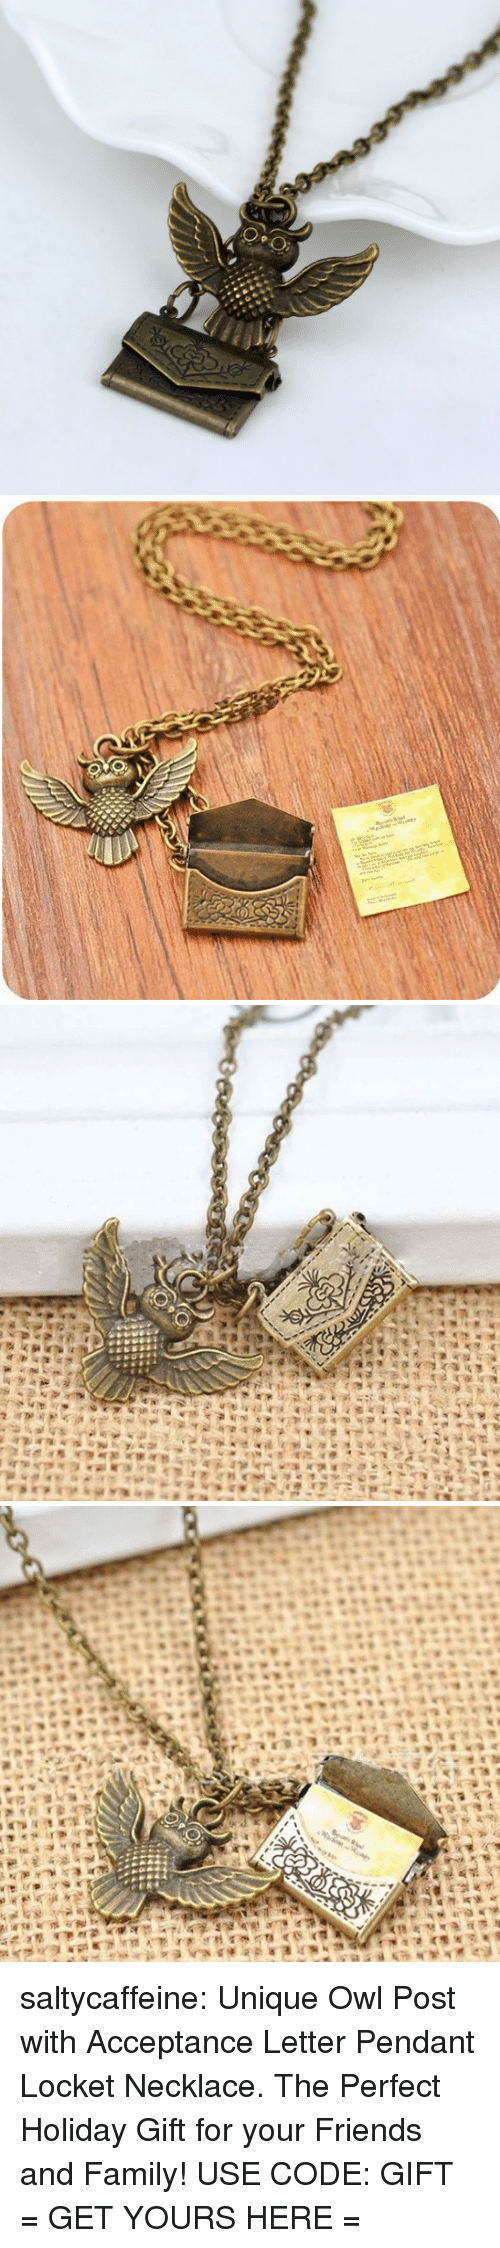 Family, Friends, and Tumblr: saltycaffeine: Unique Owl Post with Acceptance Letter Pendant Locket Necklace. The Perfect Holiday Gift for your Friends and Family! USE CODE: GIFT = GET YOURS HERE =